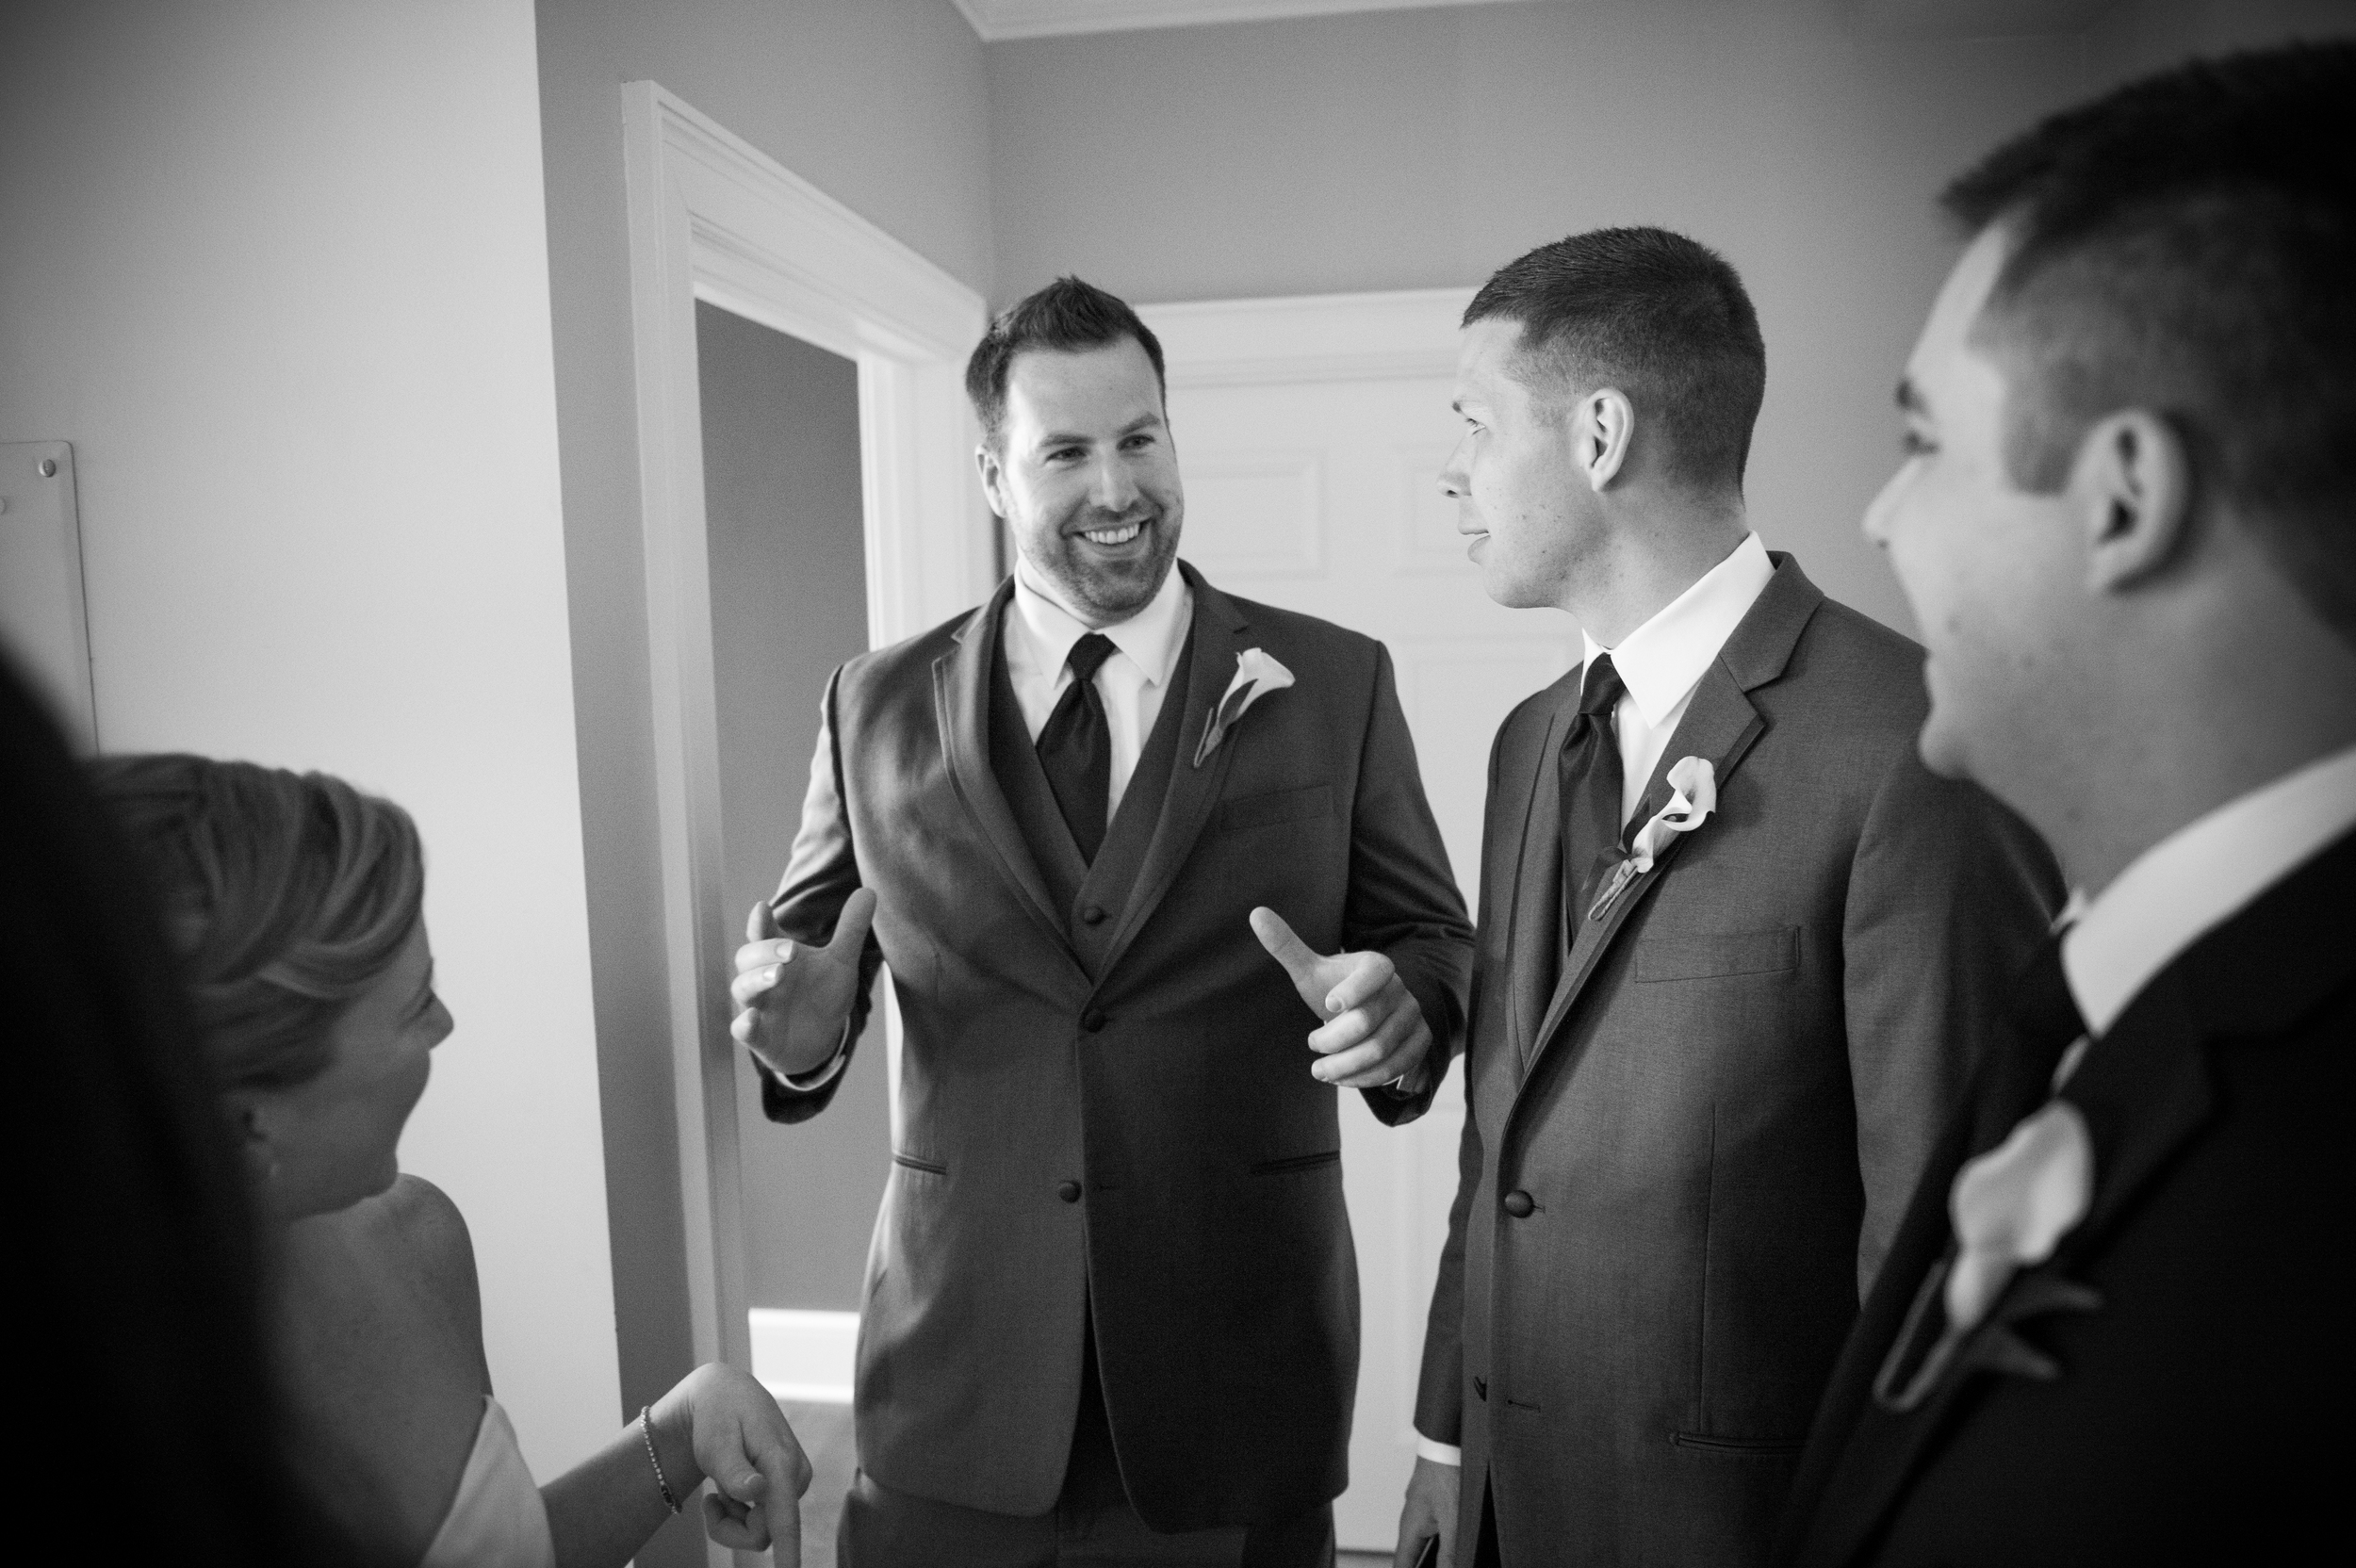 These guys are maybe the funniest groomsmen I've ever met, however their little wedding day prank on me was NOT funny - well not at the time! haha